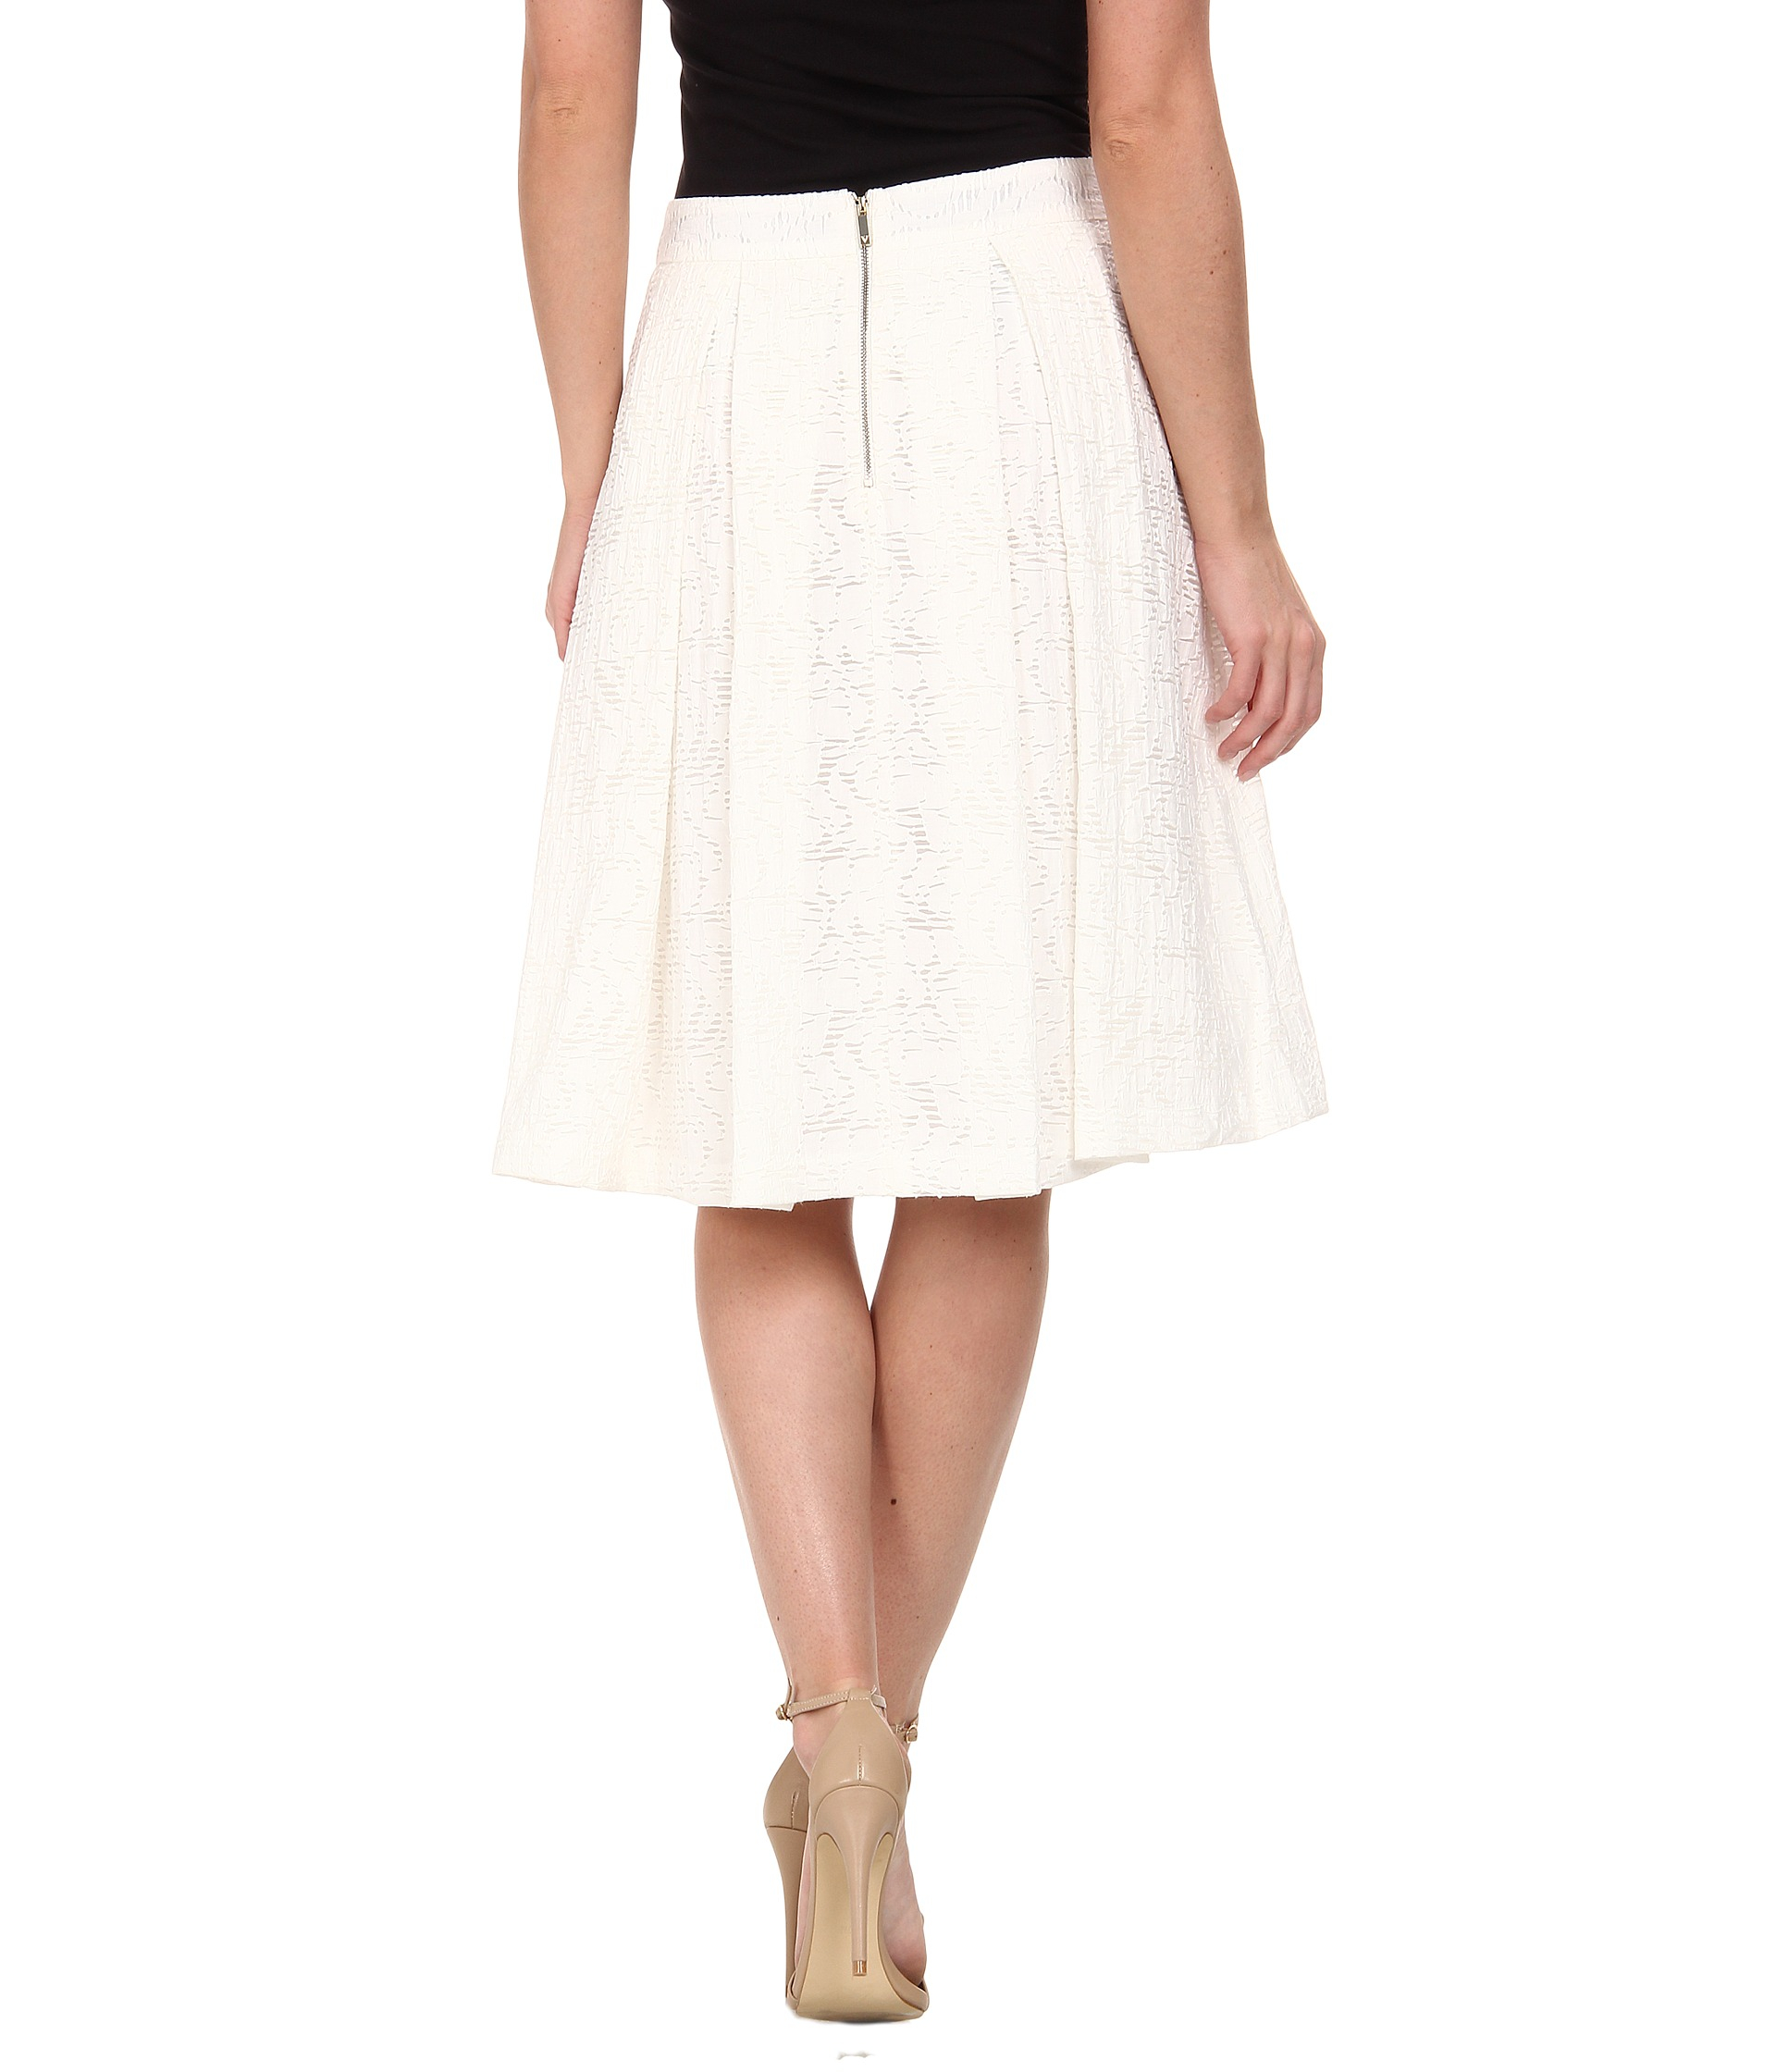 Vince camuto Knee-Length A-Line Skirt W/ Front Pleats in White   Lyst